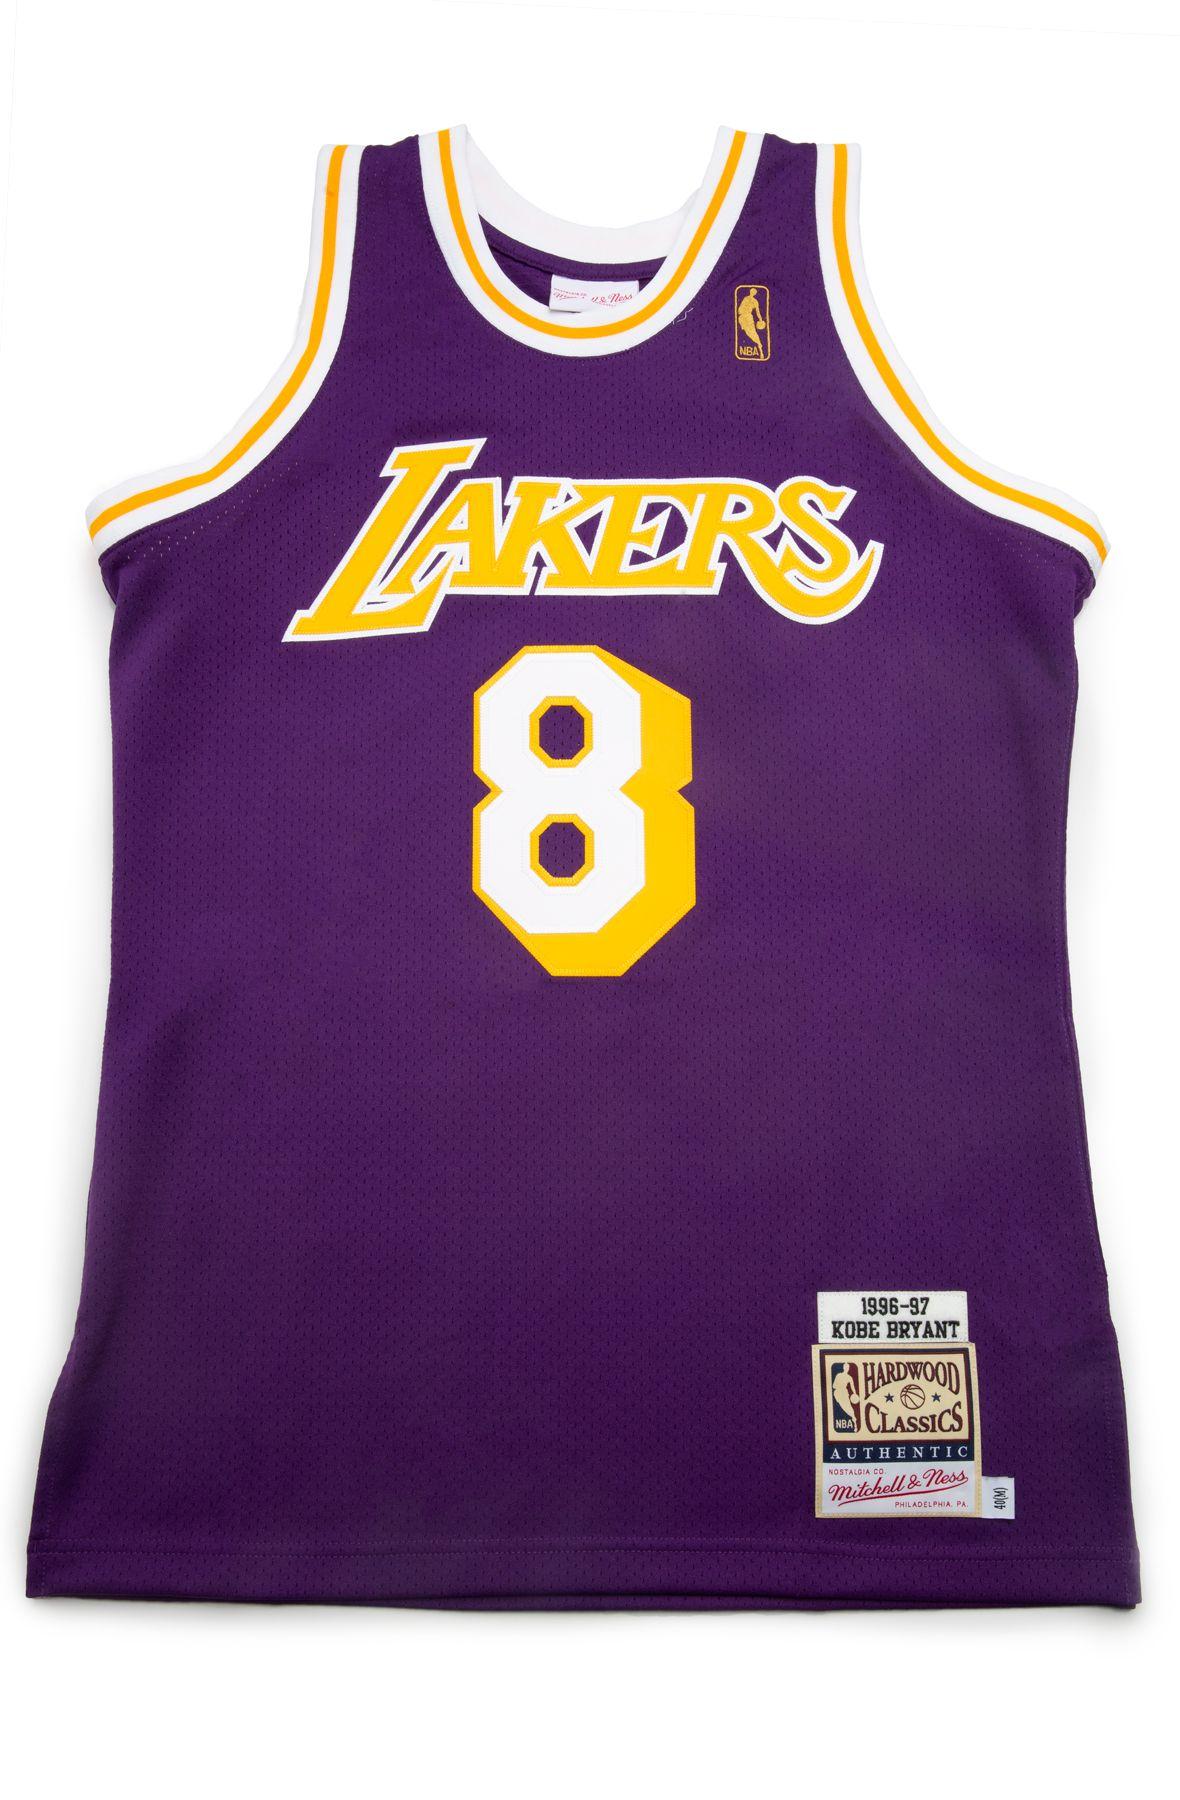 Los Angeles Lakers Kobe Bryant 1996 97 Authentic Road Jersey